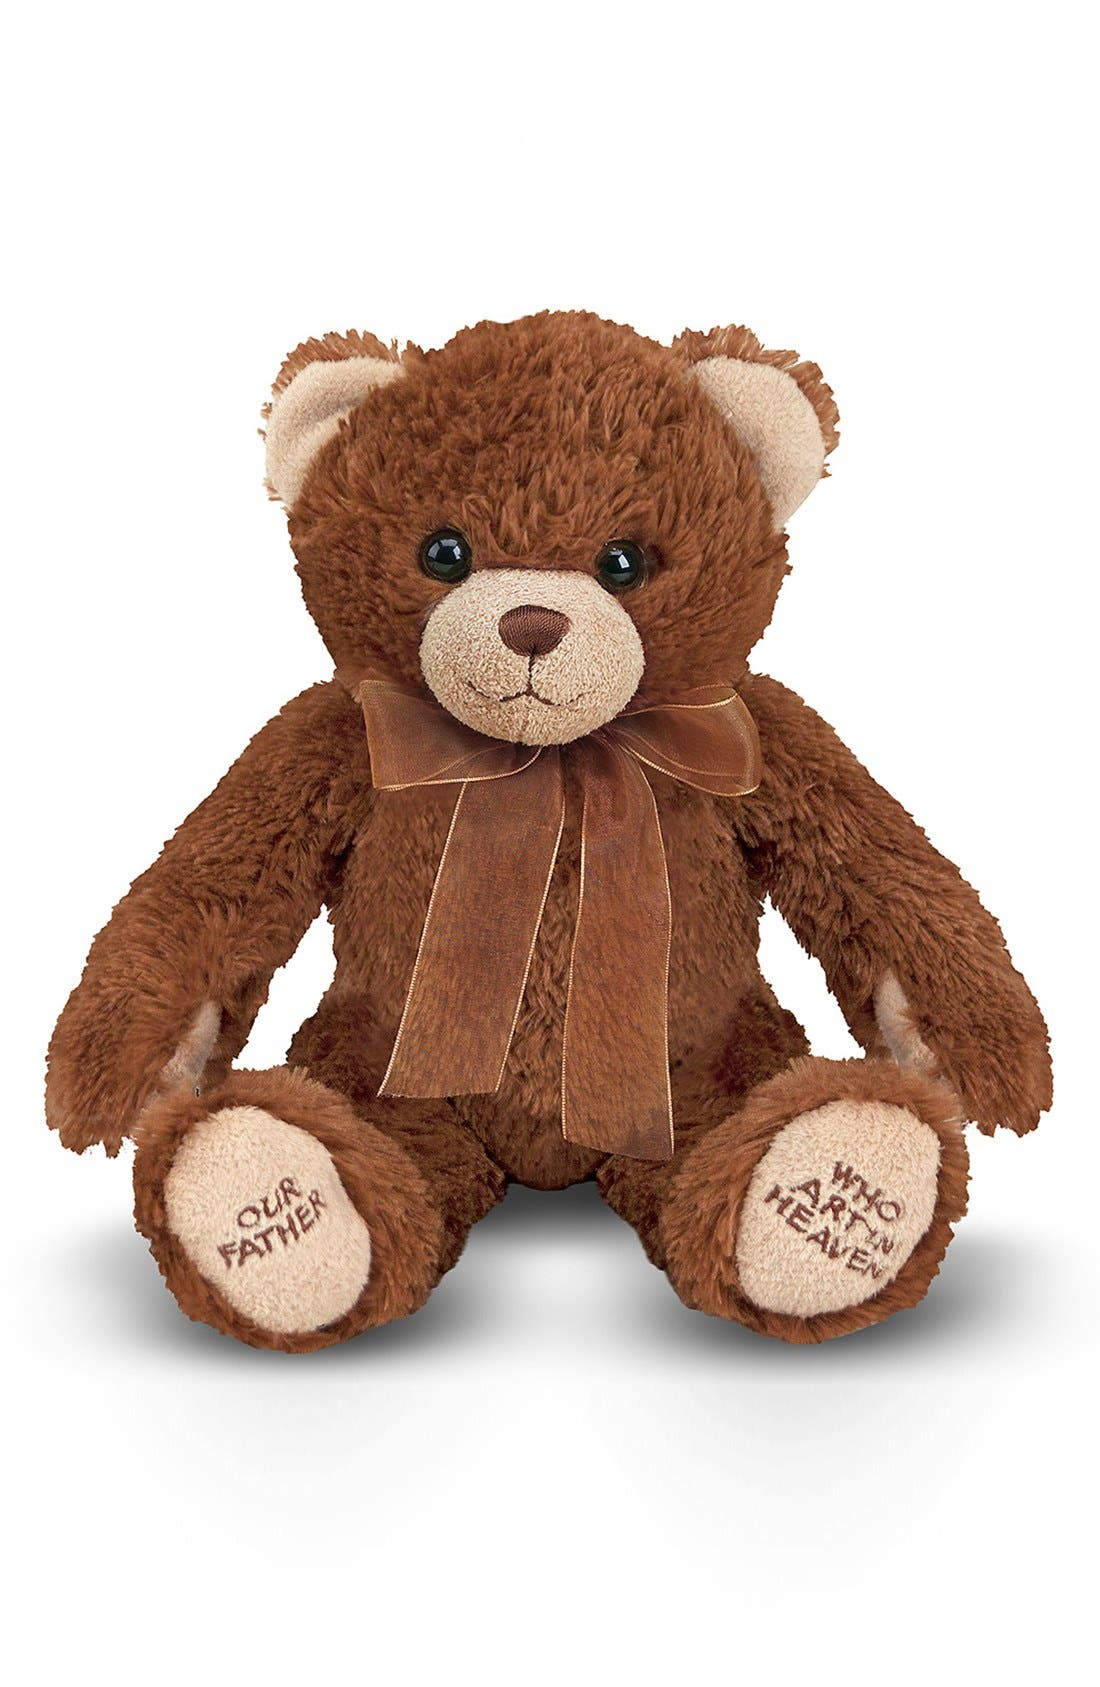 Melissa & Doug Lord's Prayer Bear Stuffed Animal